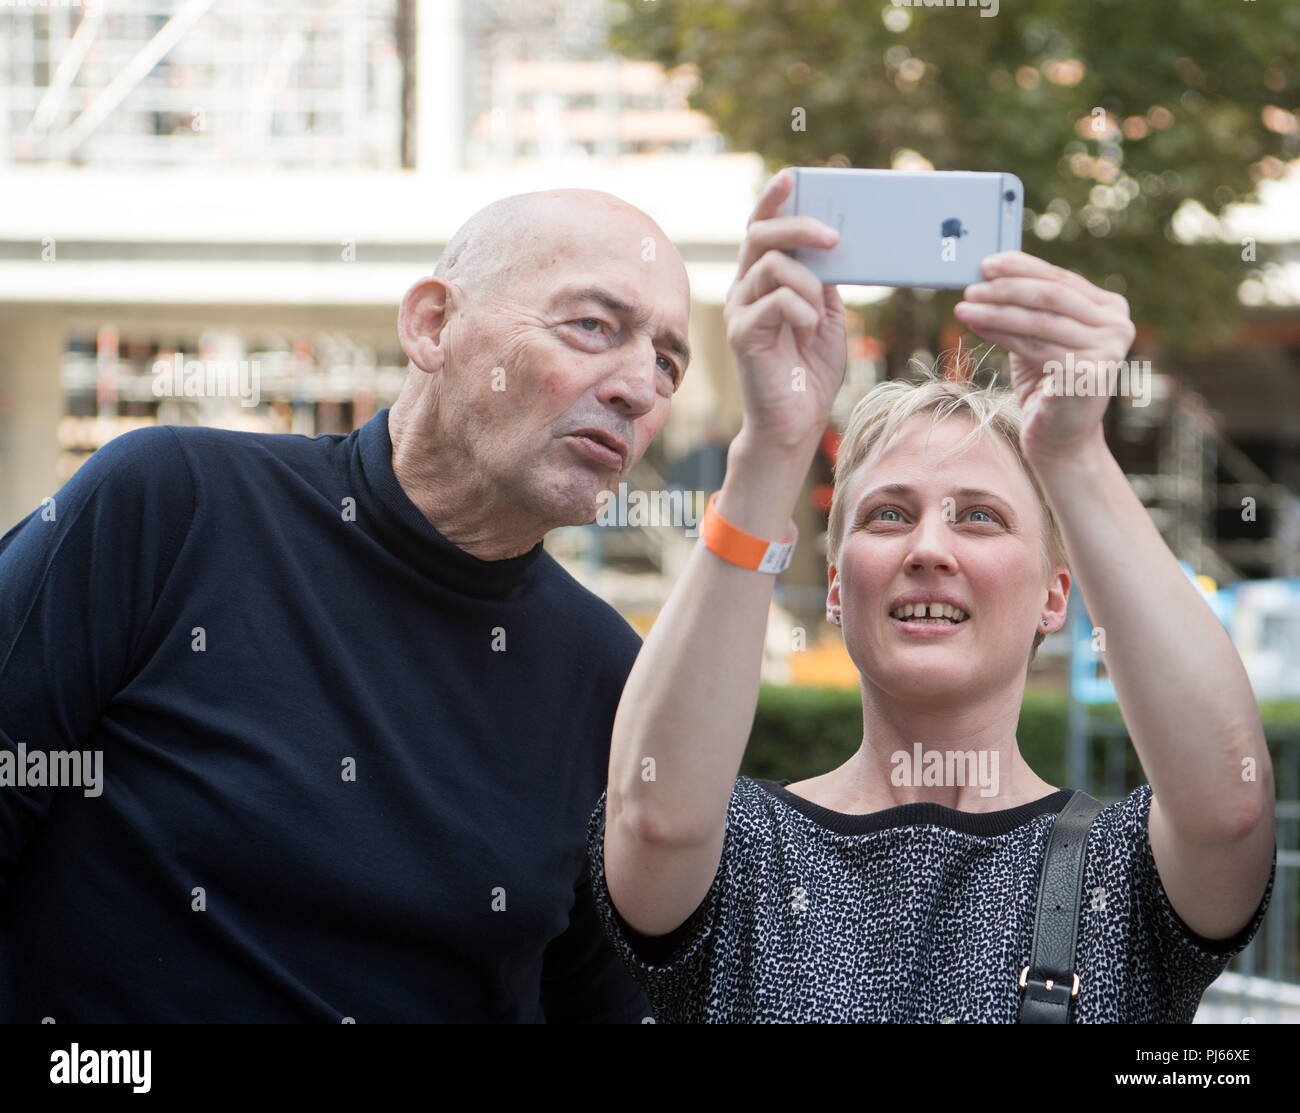 Berlin, Germany. 04th Sep, 2018. 04.09.2018, Berlin: The architects Rem Koohlhaas (l) and Katrin Betschinger from the architectural office Office for Metropolitan Architecture (OMA) take pictures with a smartphone during the topping-out ceremony for the Axel Springer new building. Credit: Soeren Stache/dpa/Alamy Live News - Stock Image